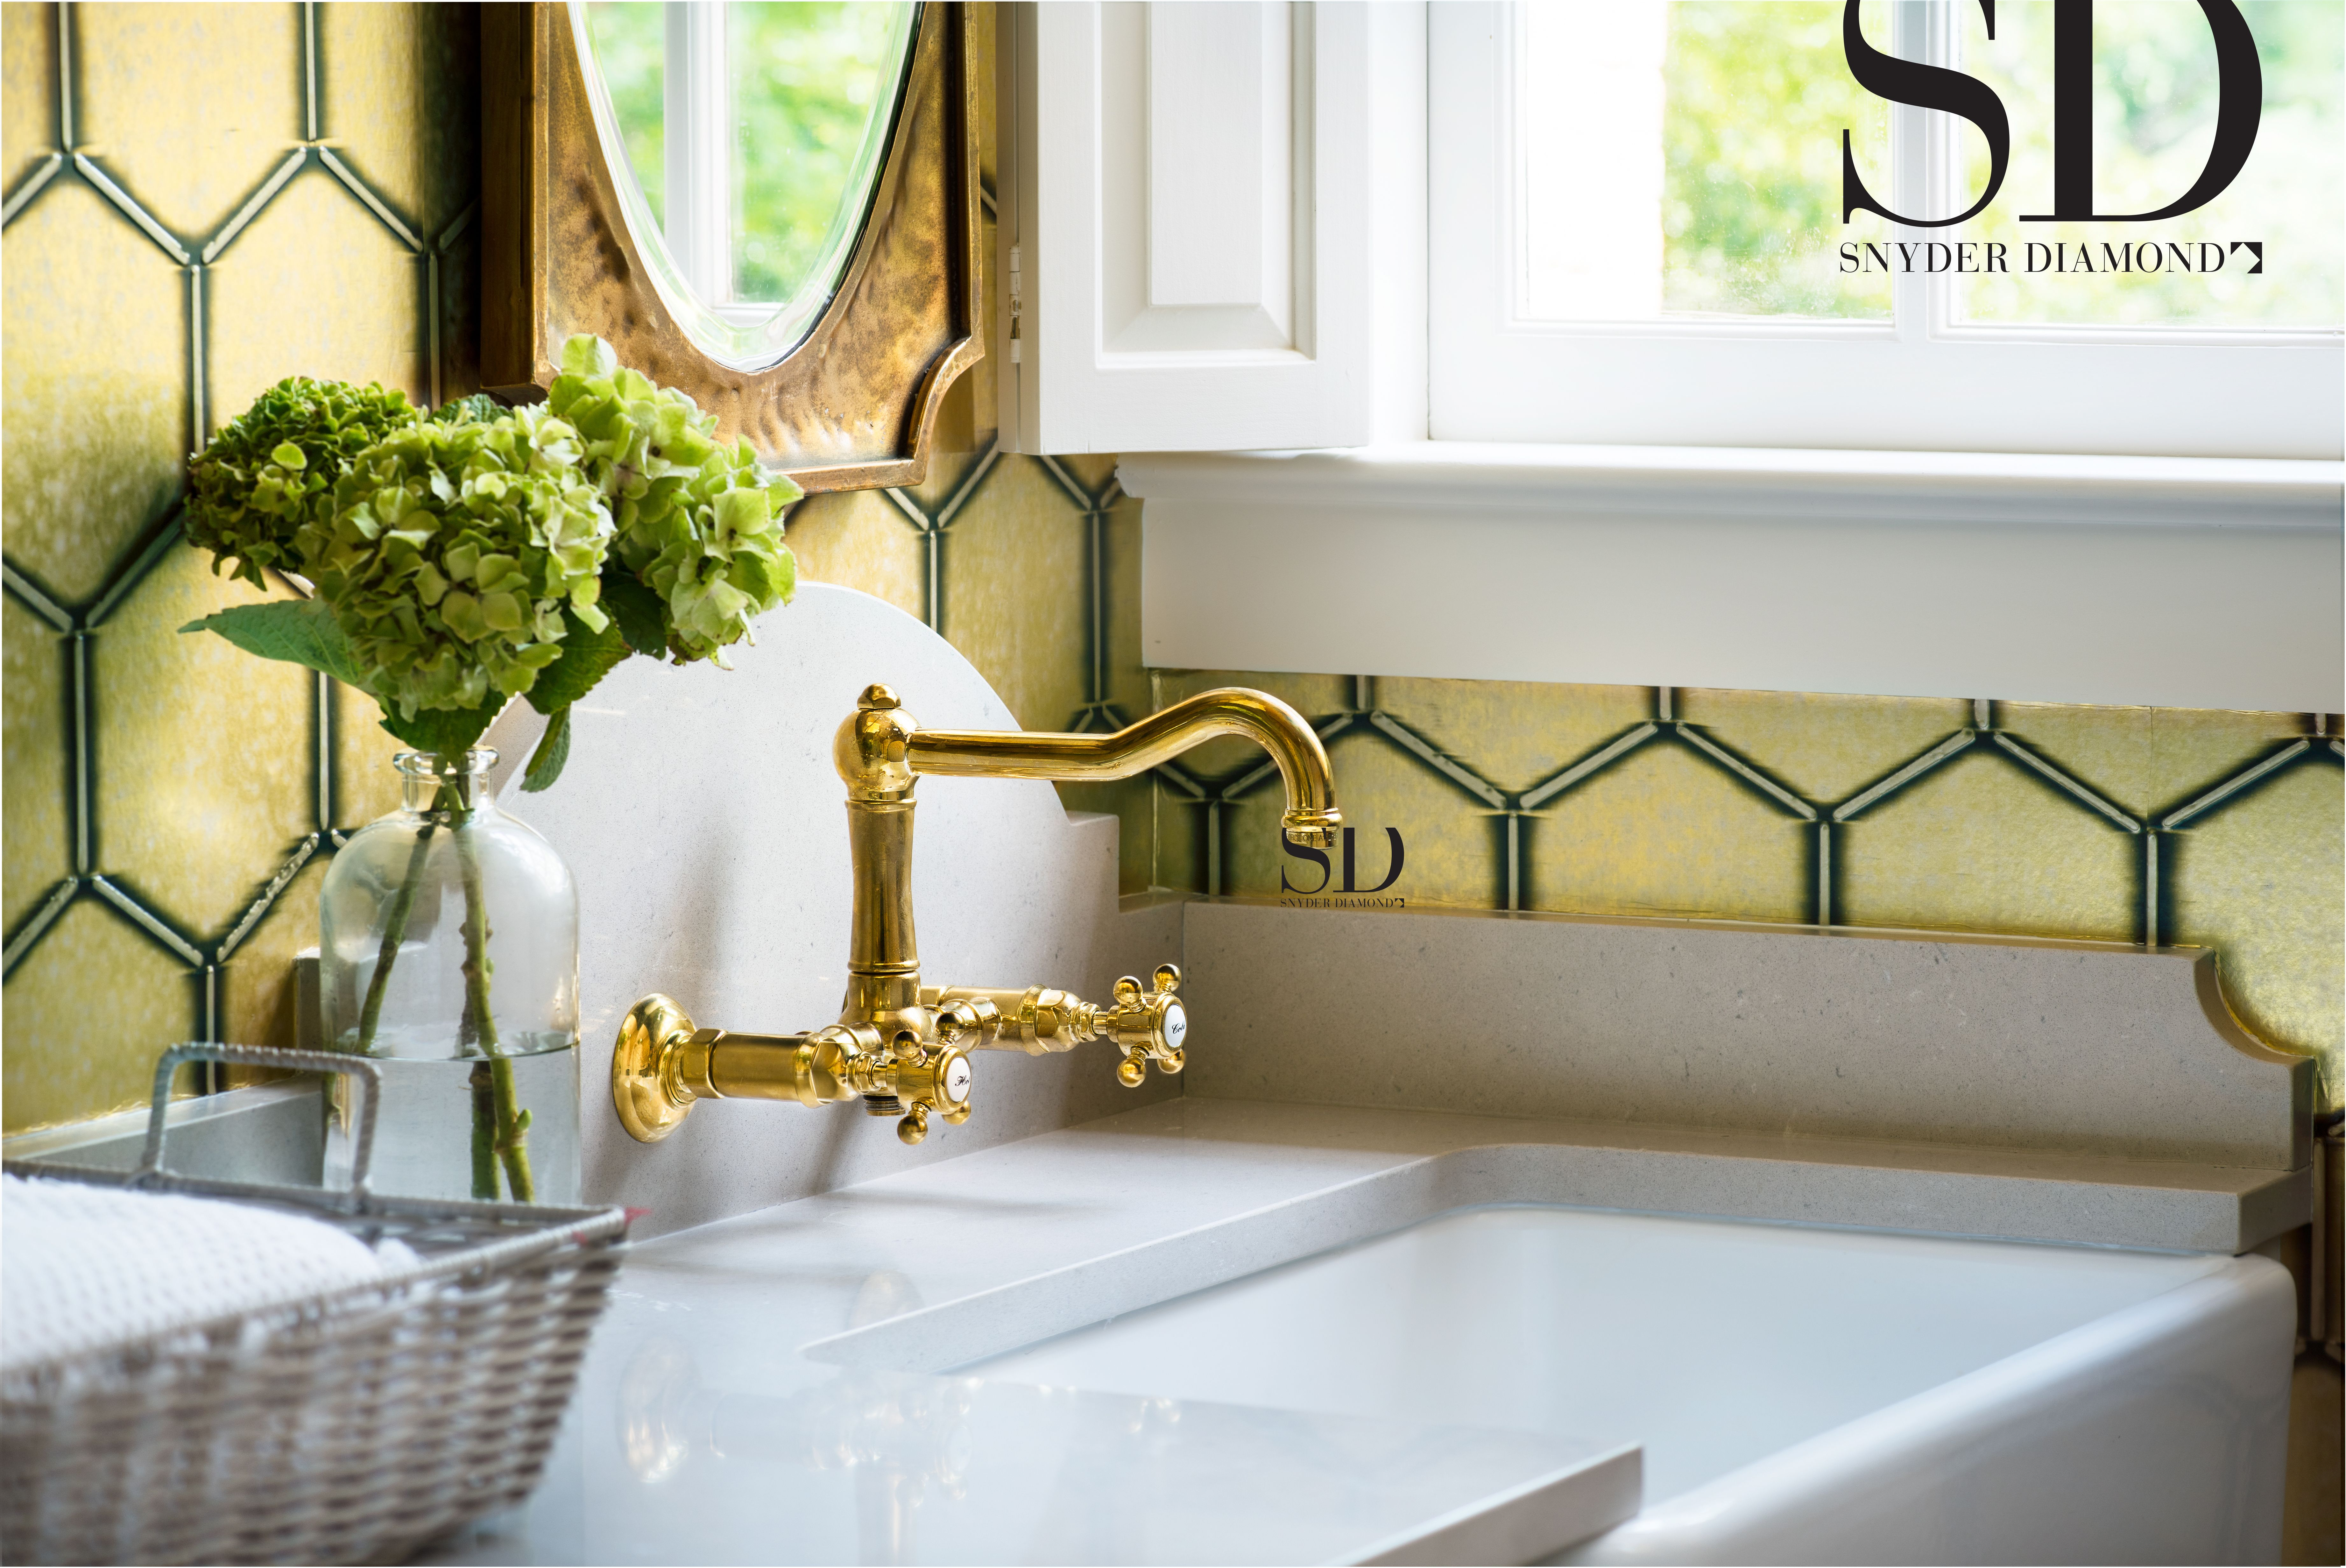 Designer Ad By Snyder Diamond Kitchensink Sinkfaucets Faucets